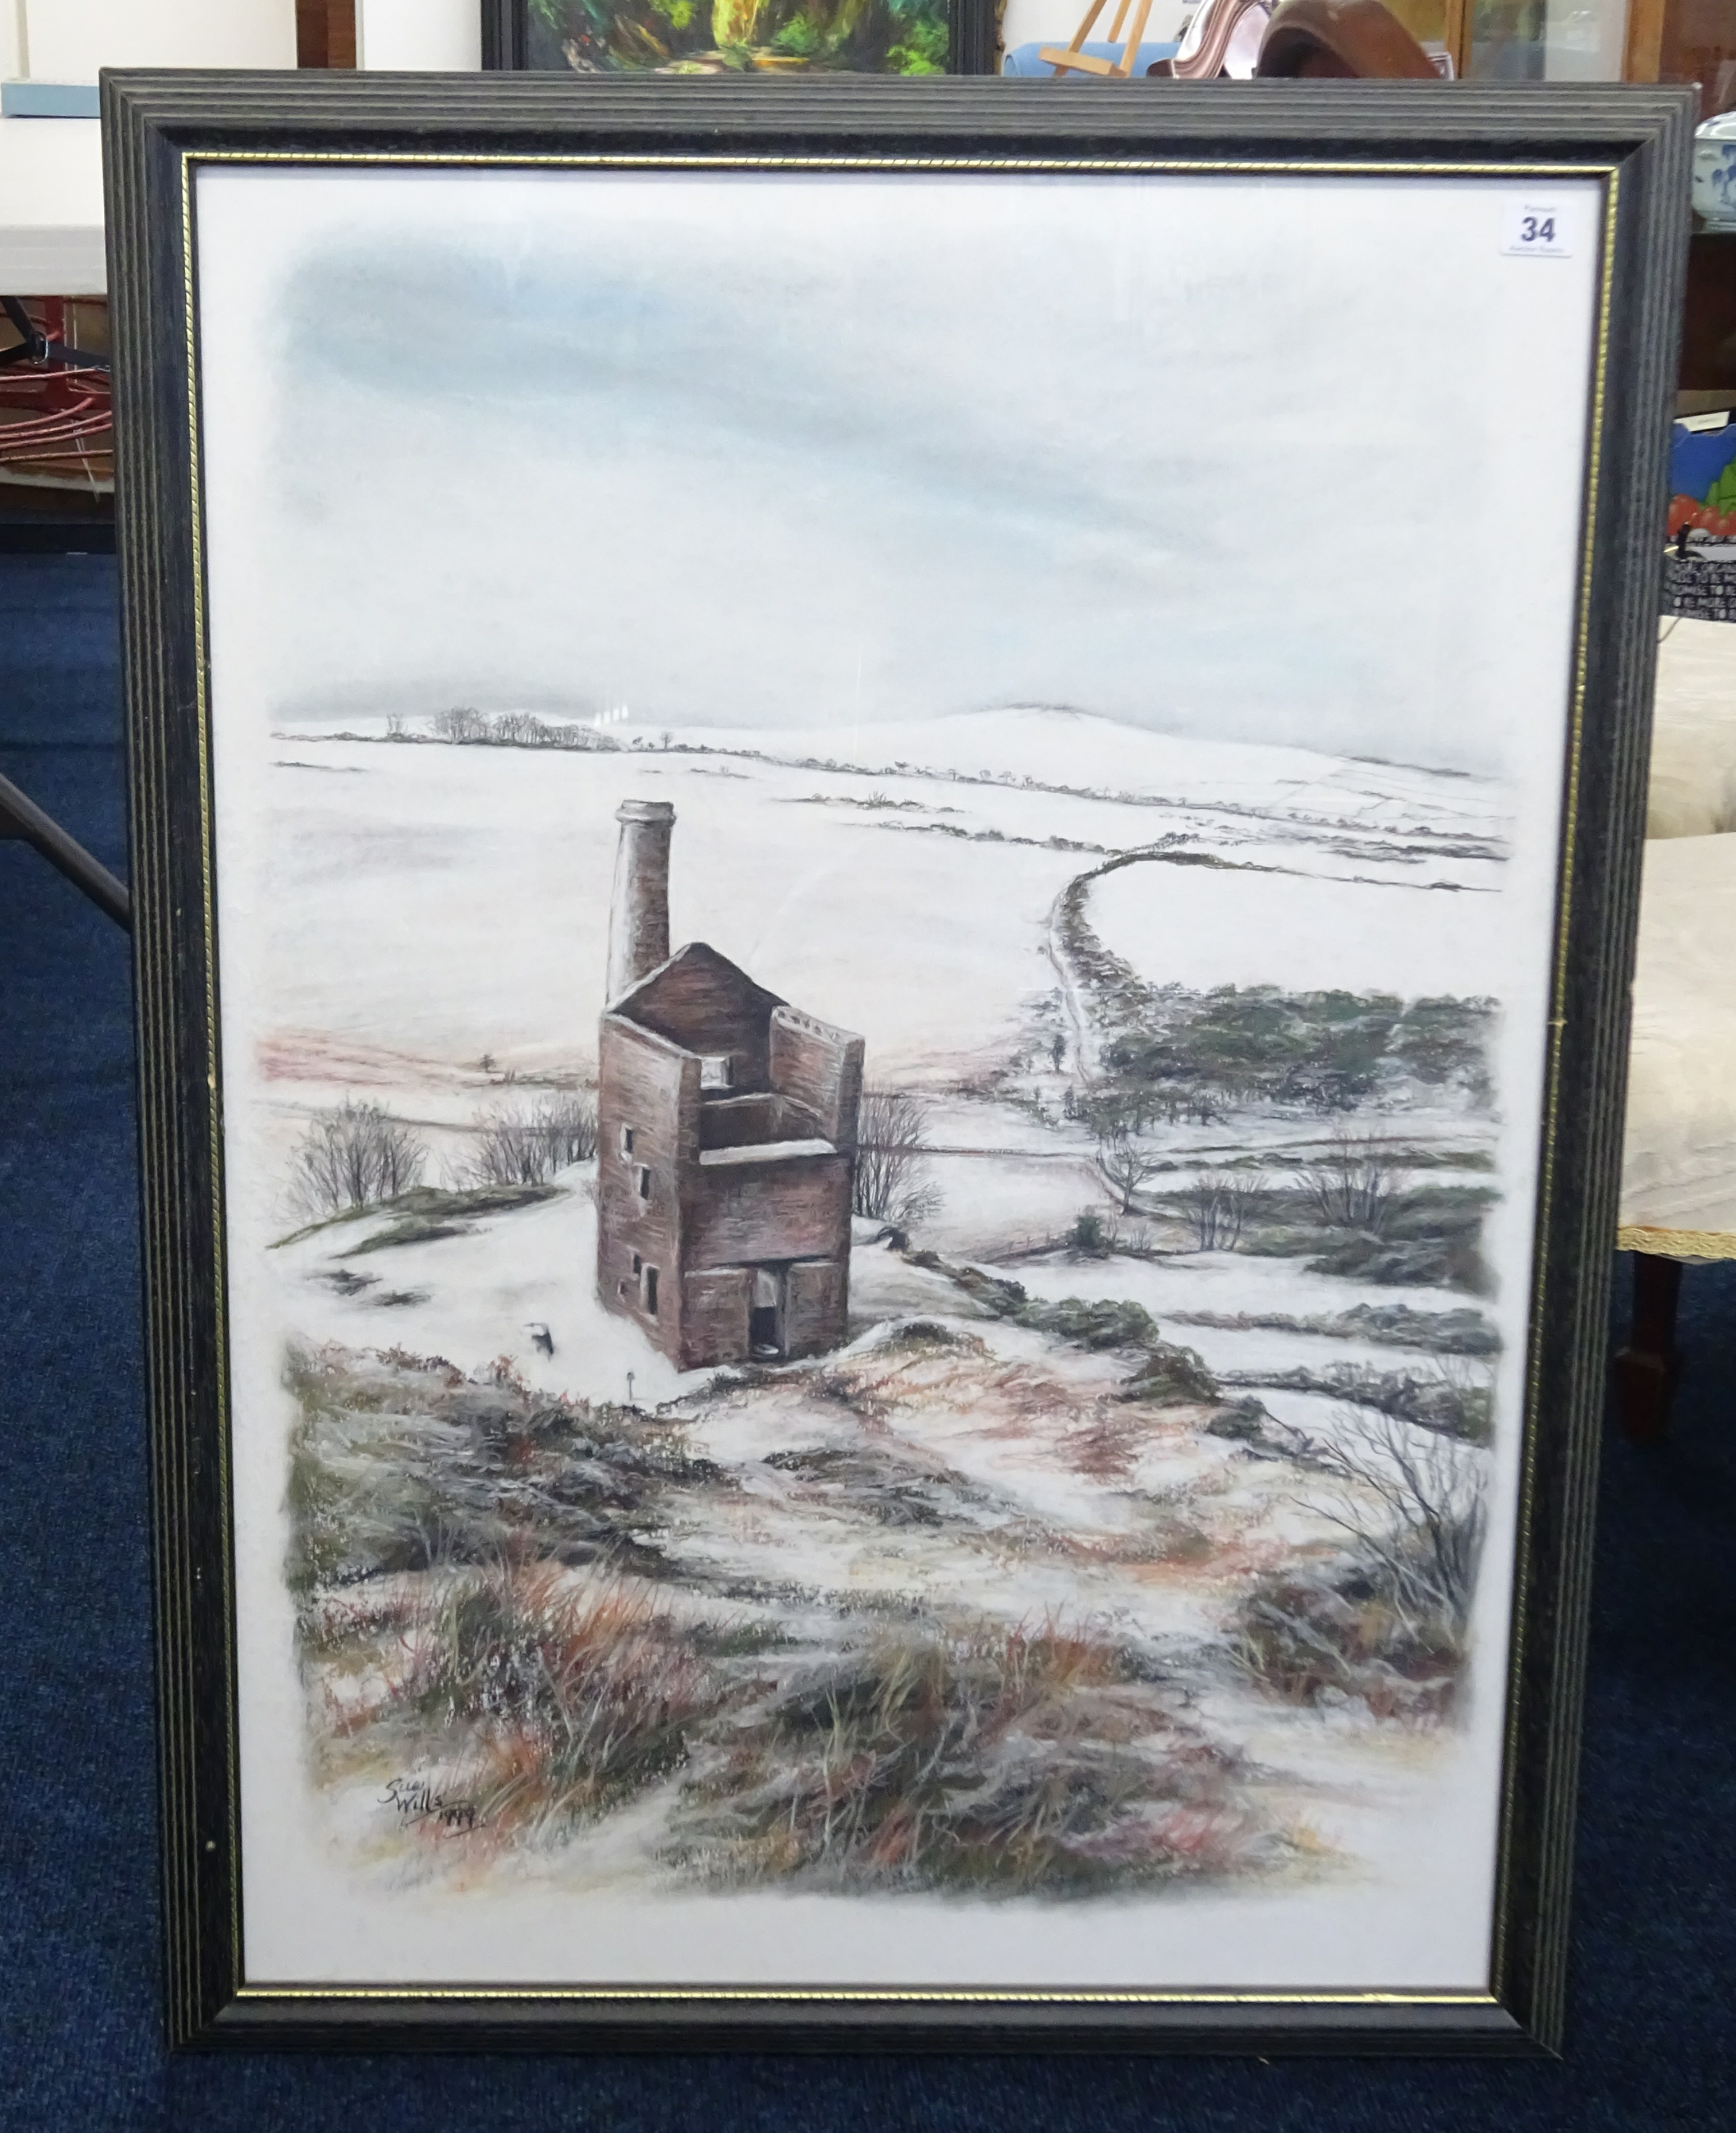 Lot 034 - Sue Wills (Plymouth artist) mixed media, 'Tin Mine Landscape' signed and dated 1999, framed and